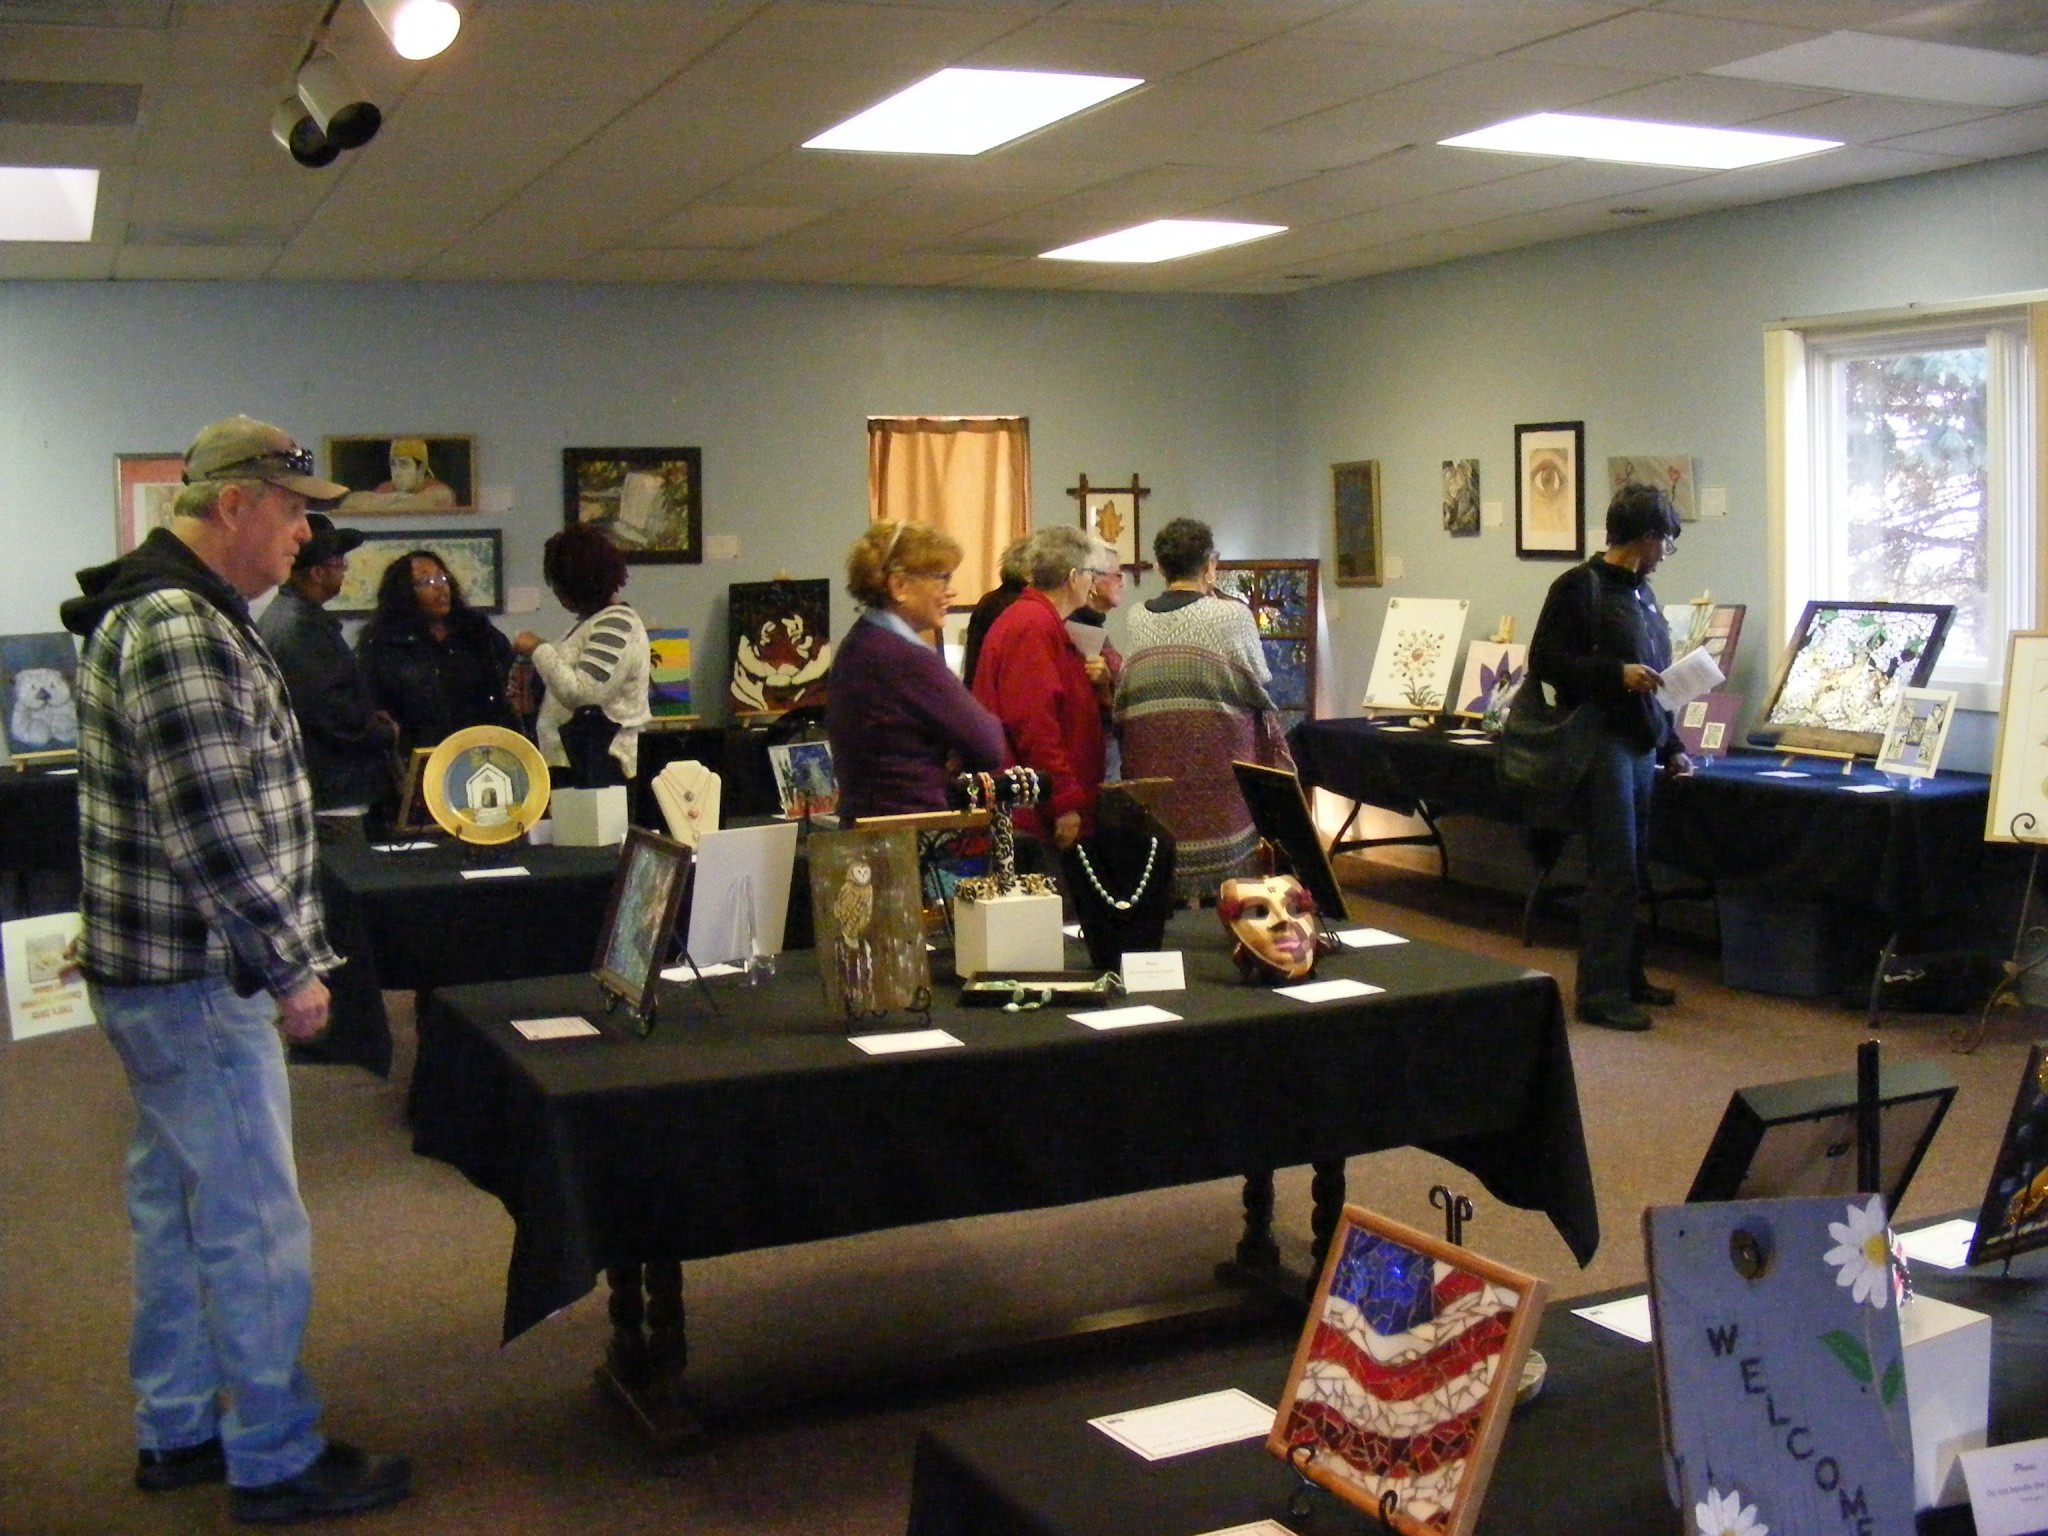 The Victory Center, located at 5532 W. Central Ave., Suite B., Toledo, will present the Eighth Annual Cancer Survivor Art Show Jan. 31 and Feb. 1. The center hosts a free art therapy program for cancer patients and survivors (Submitted photo)